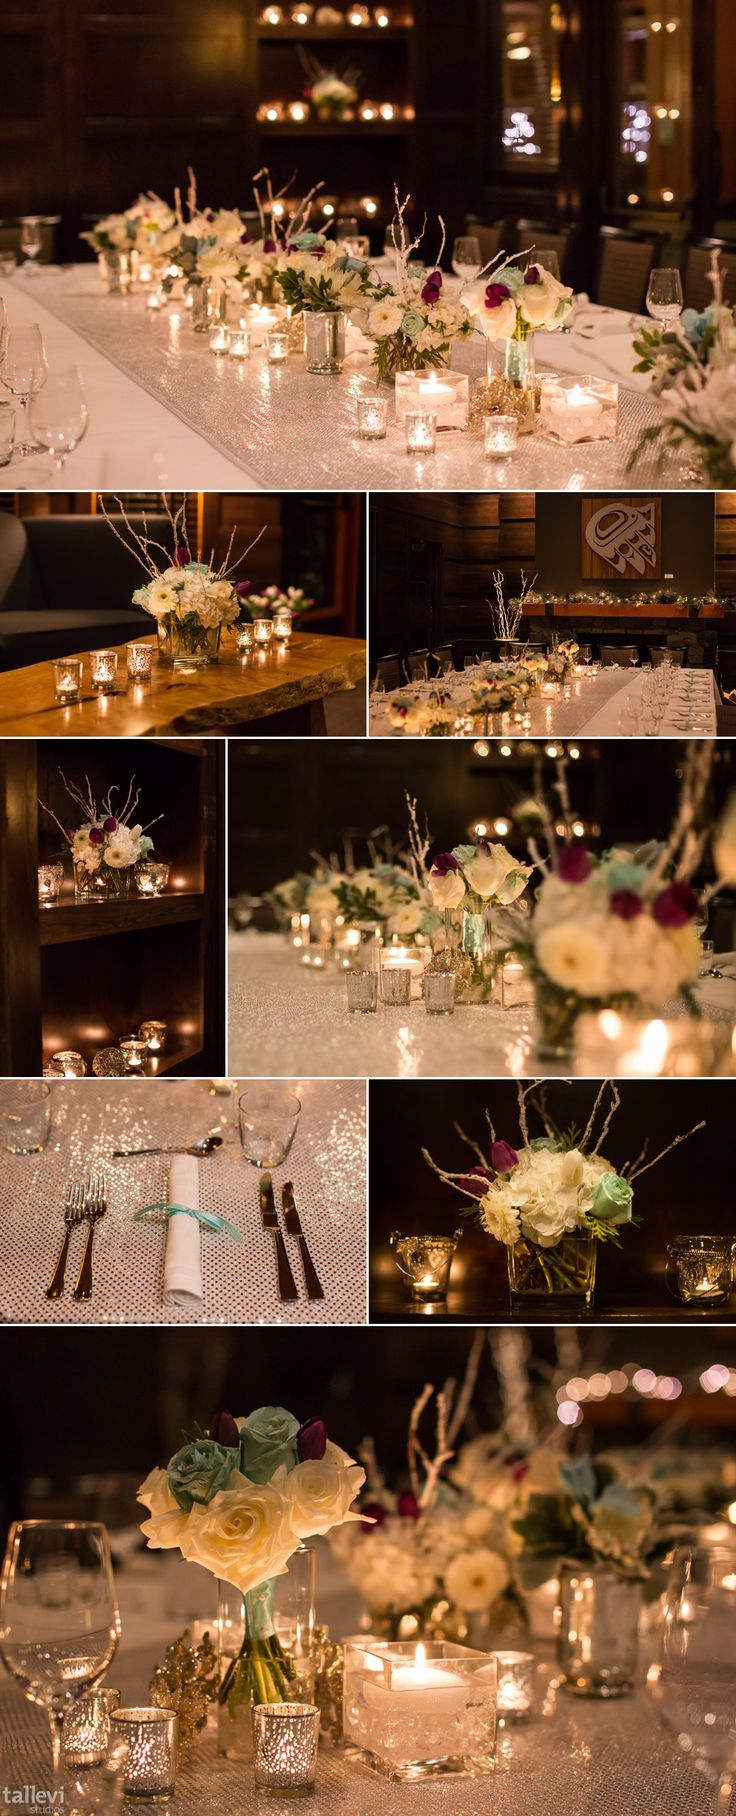 Winter wedding reception in our cozy library